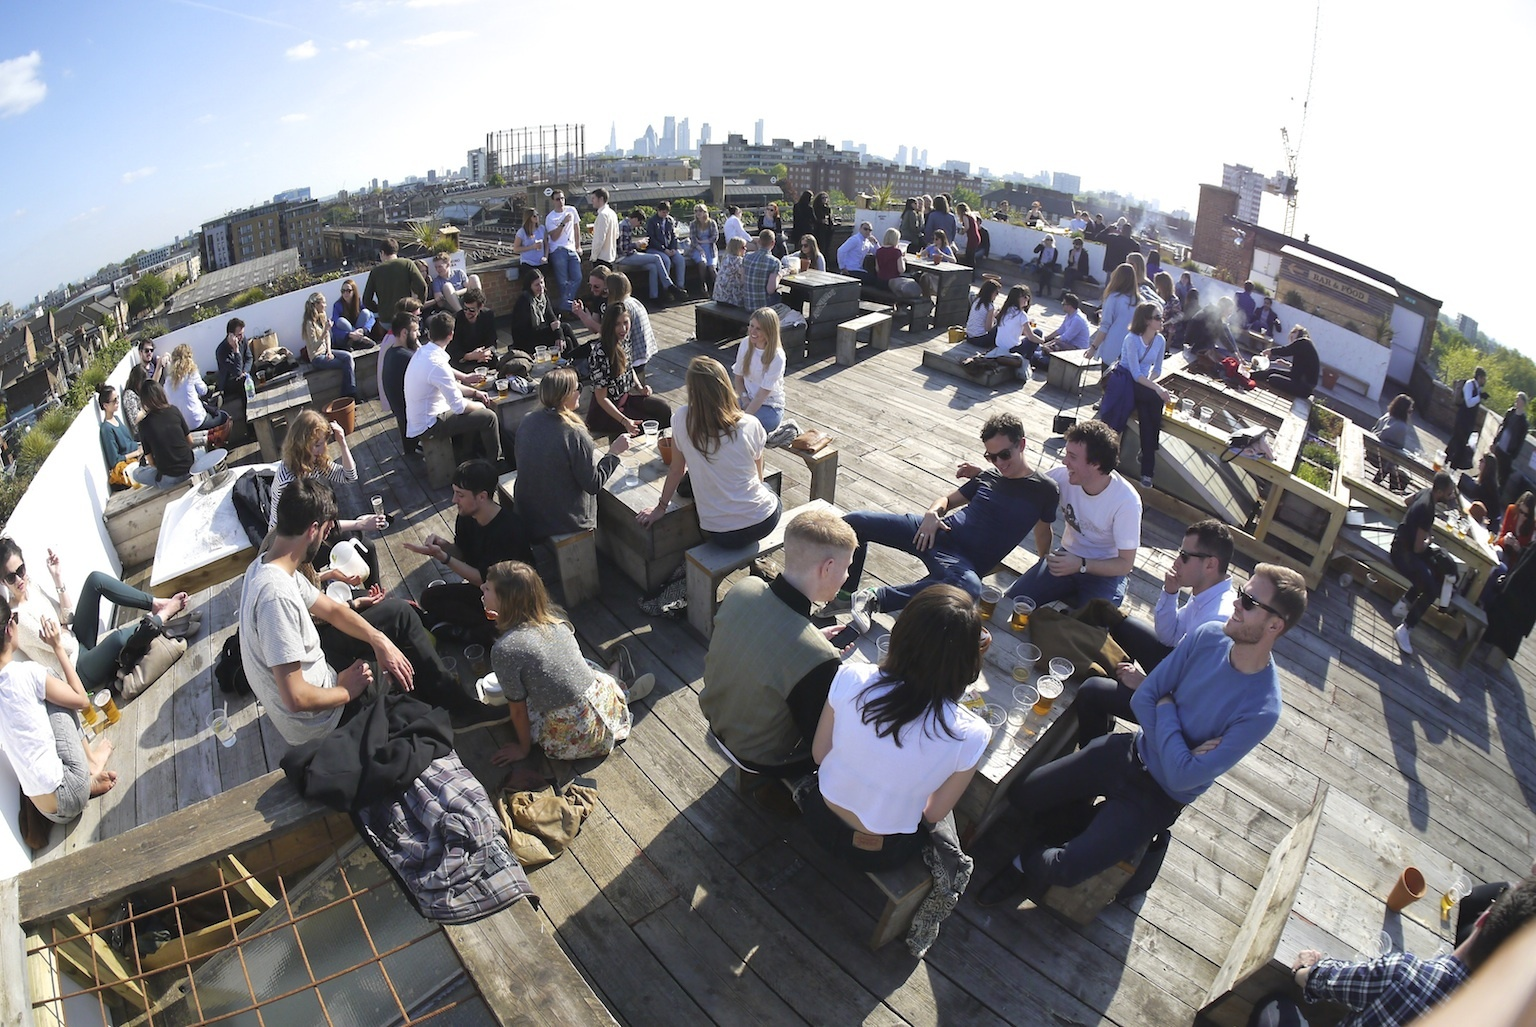 London Bars With A View To Make Your Jaw Drop Time Out London - Epic photos taken from the rooftops offer a new perspective of london